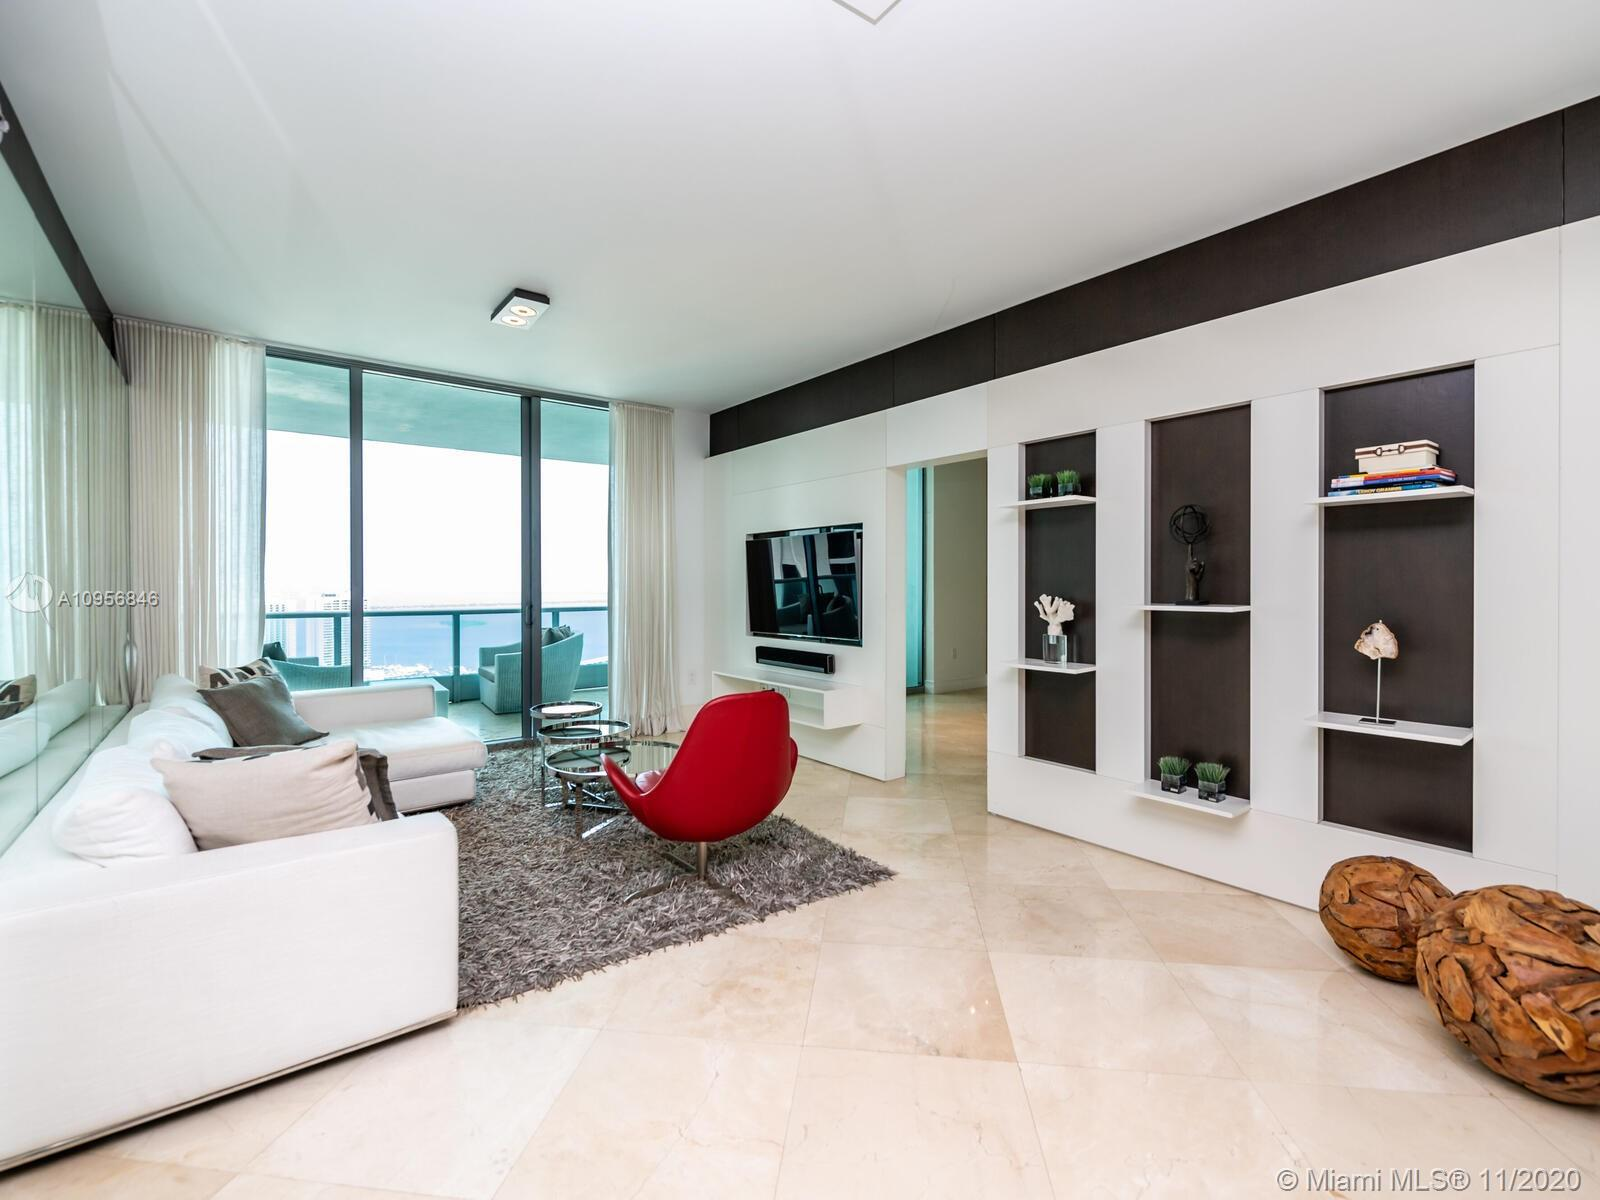 Professionally furnished unit with custom finishes designed by Casa Q. Beautiful 2 Bedroom & 3 Bath